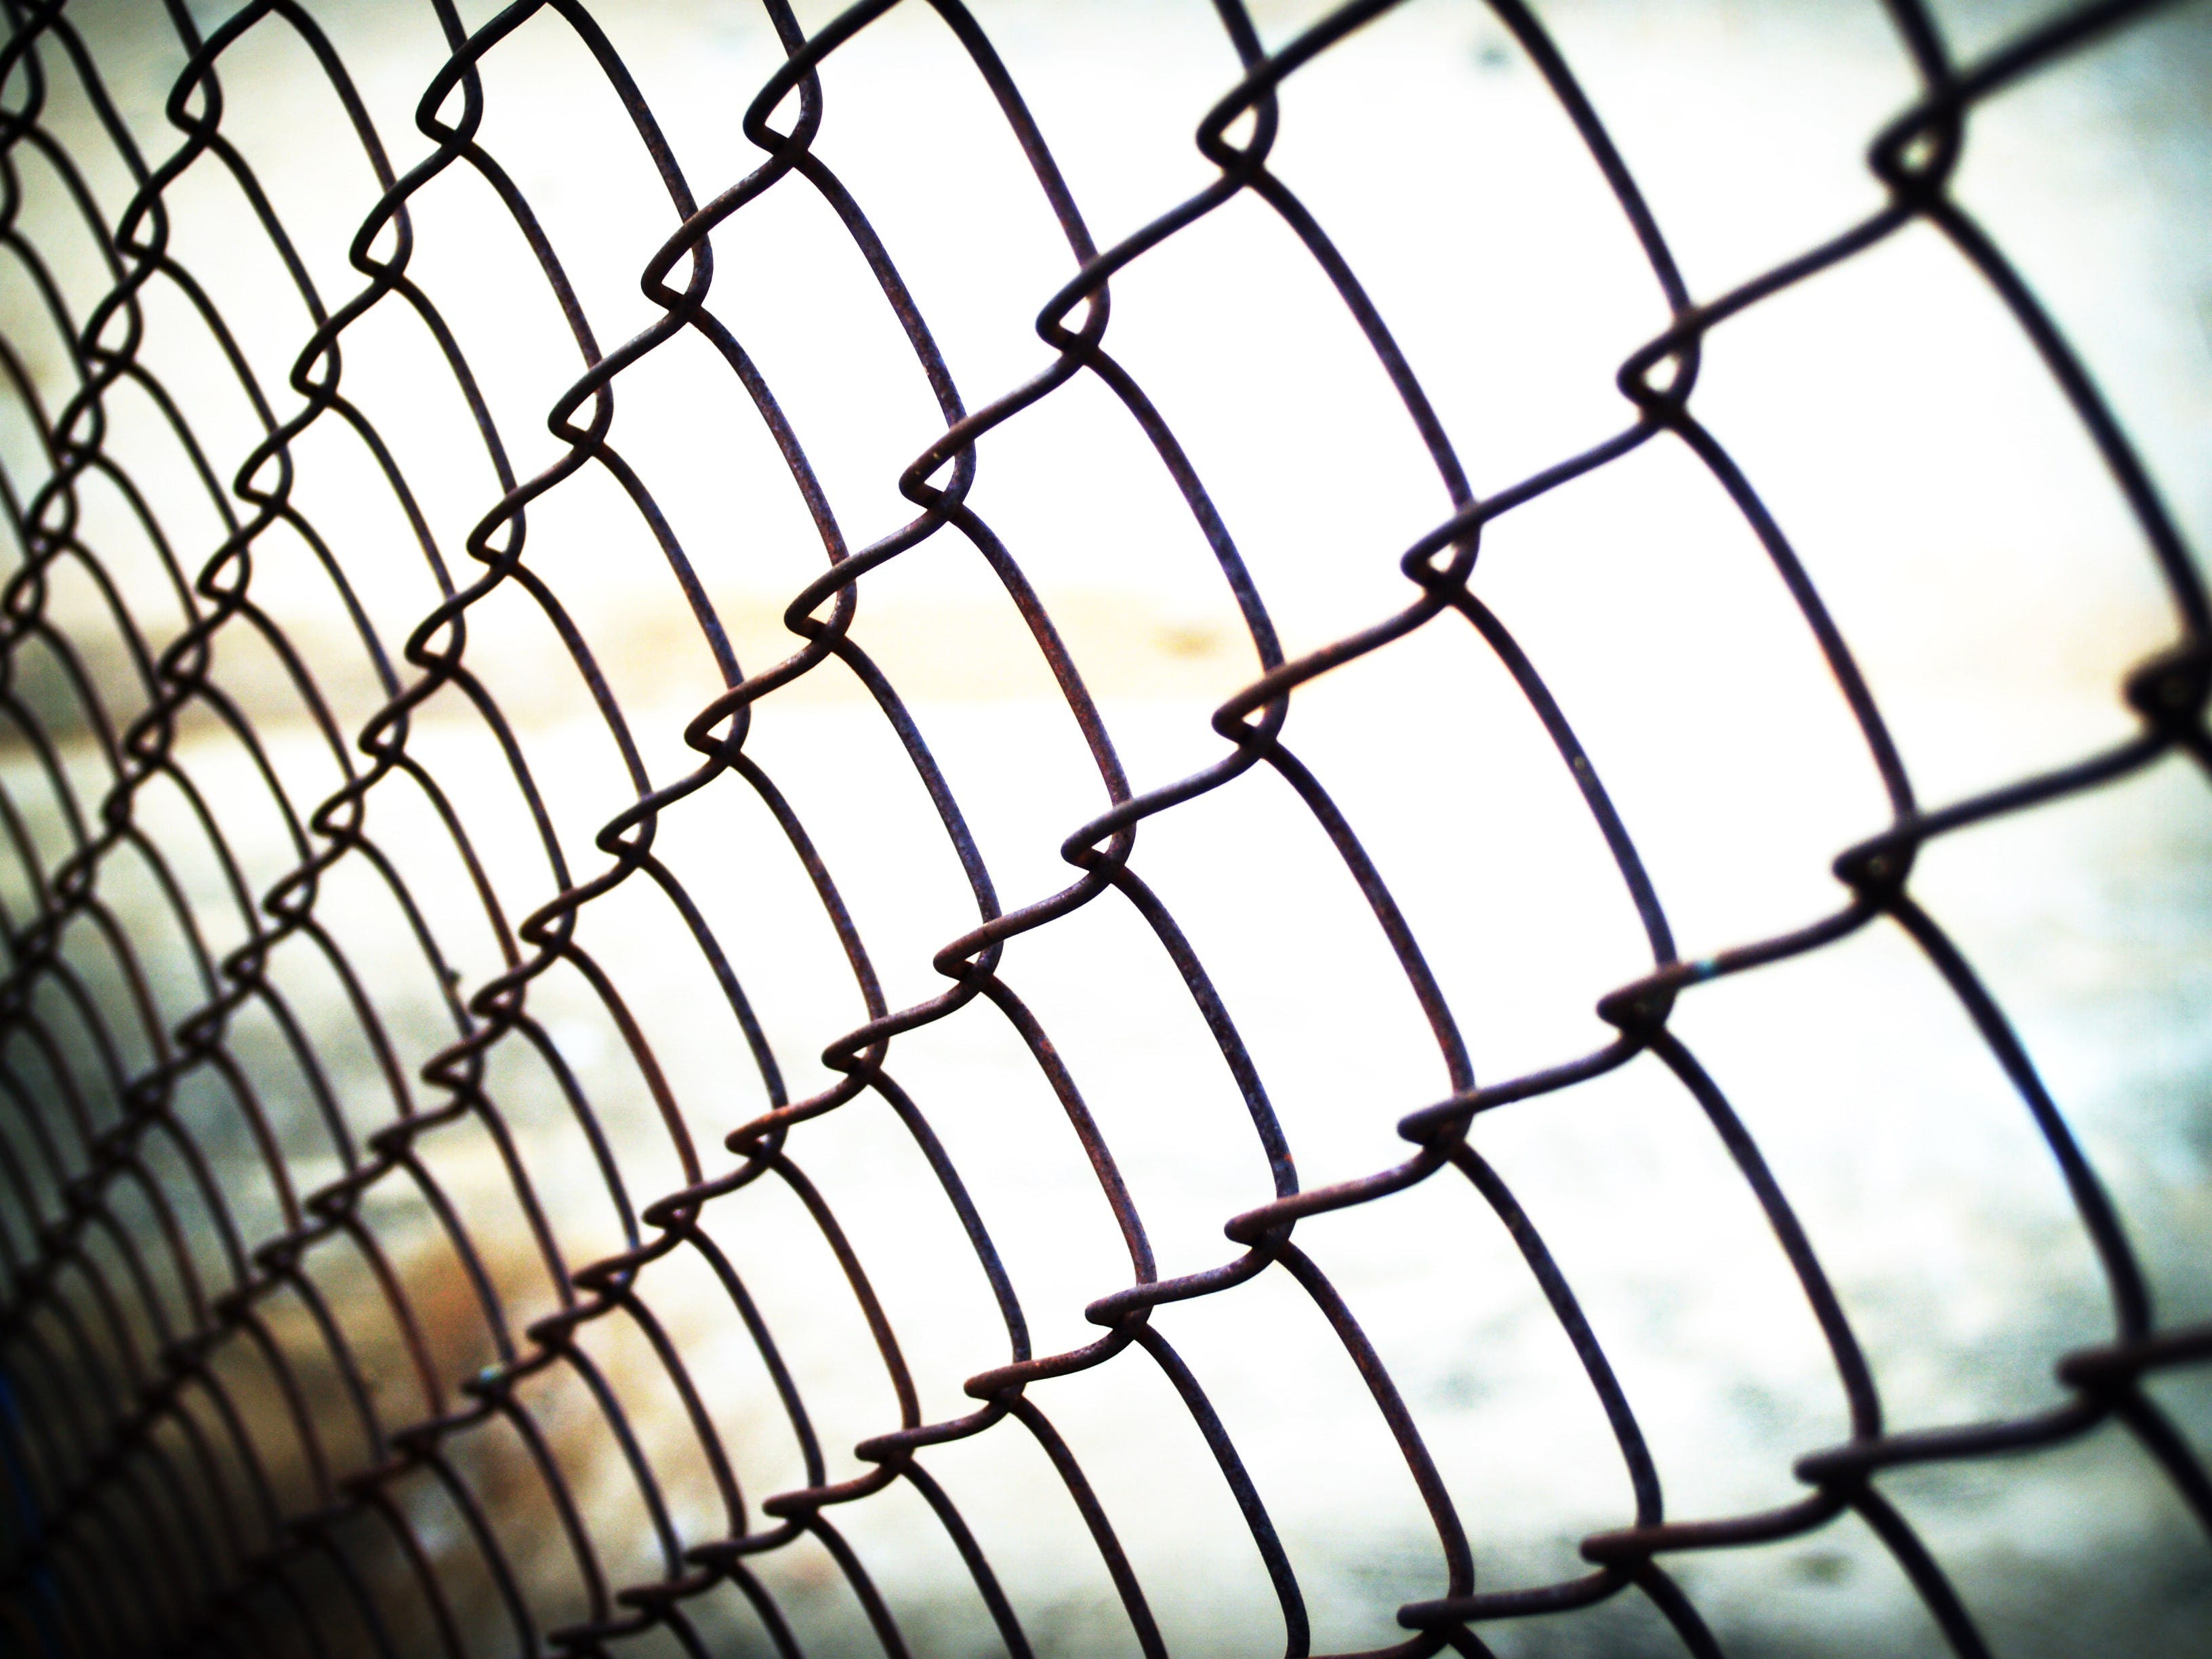 chain link fence texture. Metal Chain Fence. Free Stock Photo Of Metal, Blur, Fence, Steel Link Fence Texture C